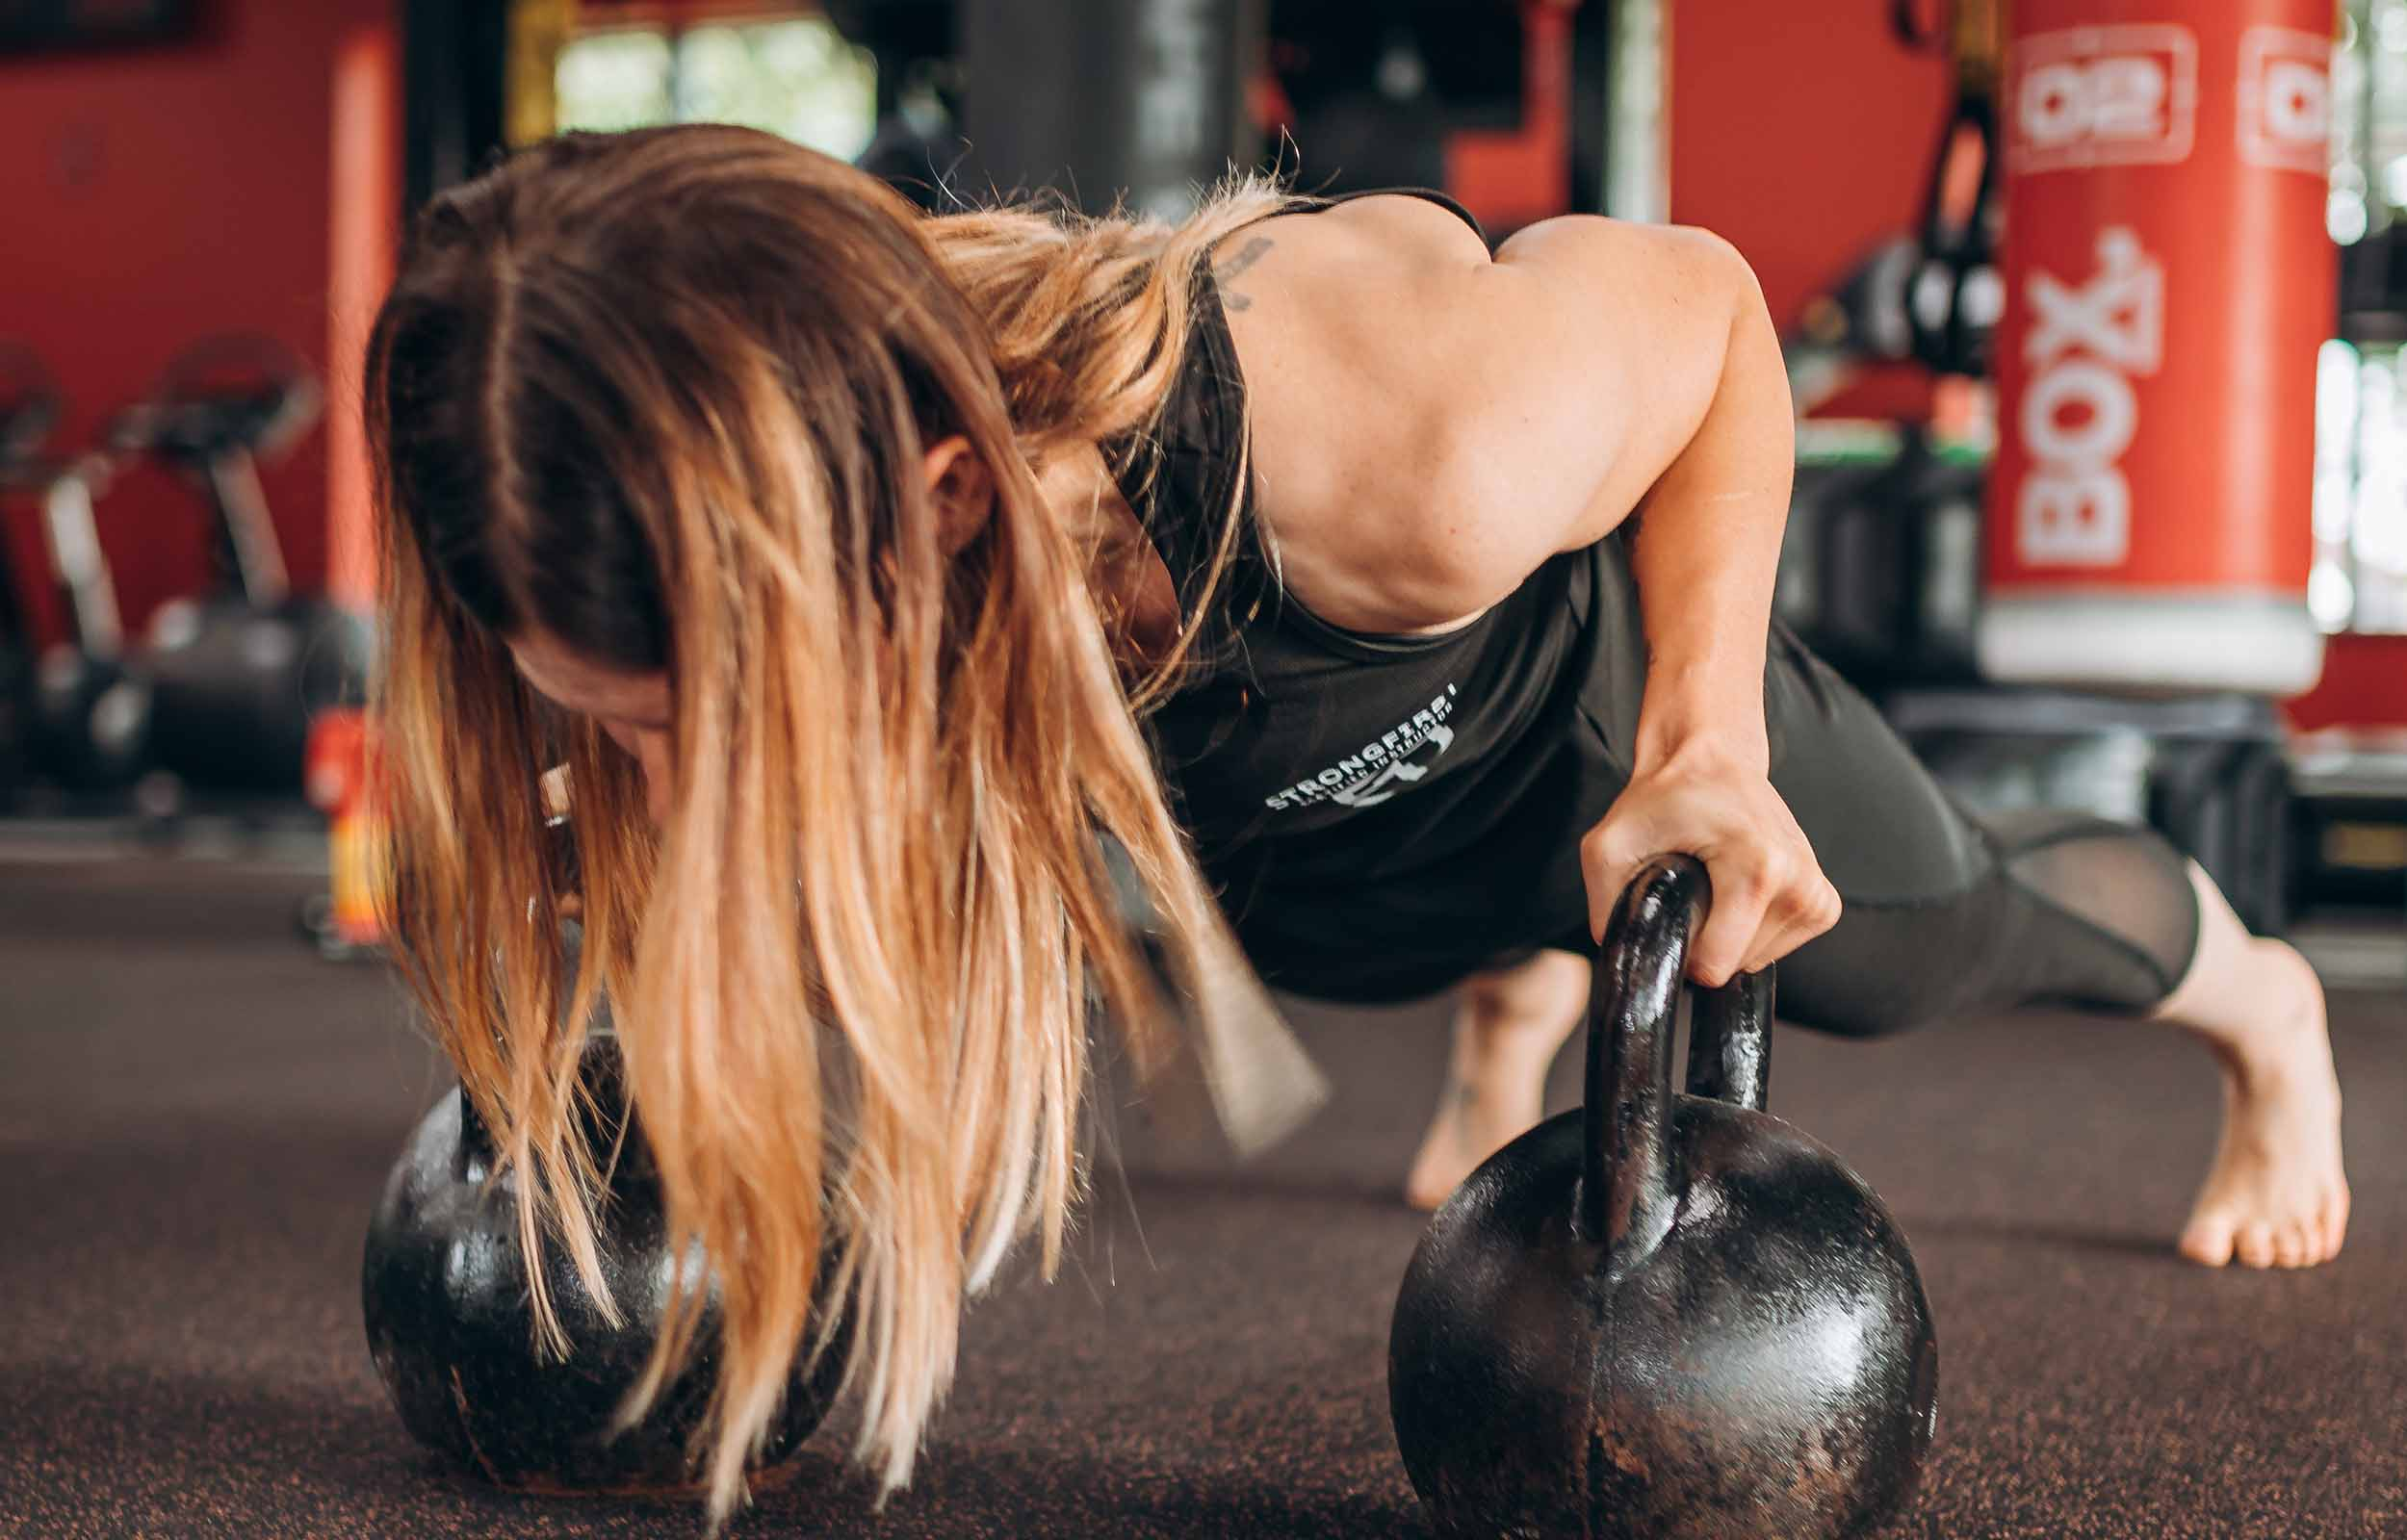 StrongFirst personal training Hannah